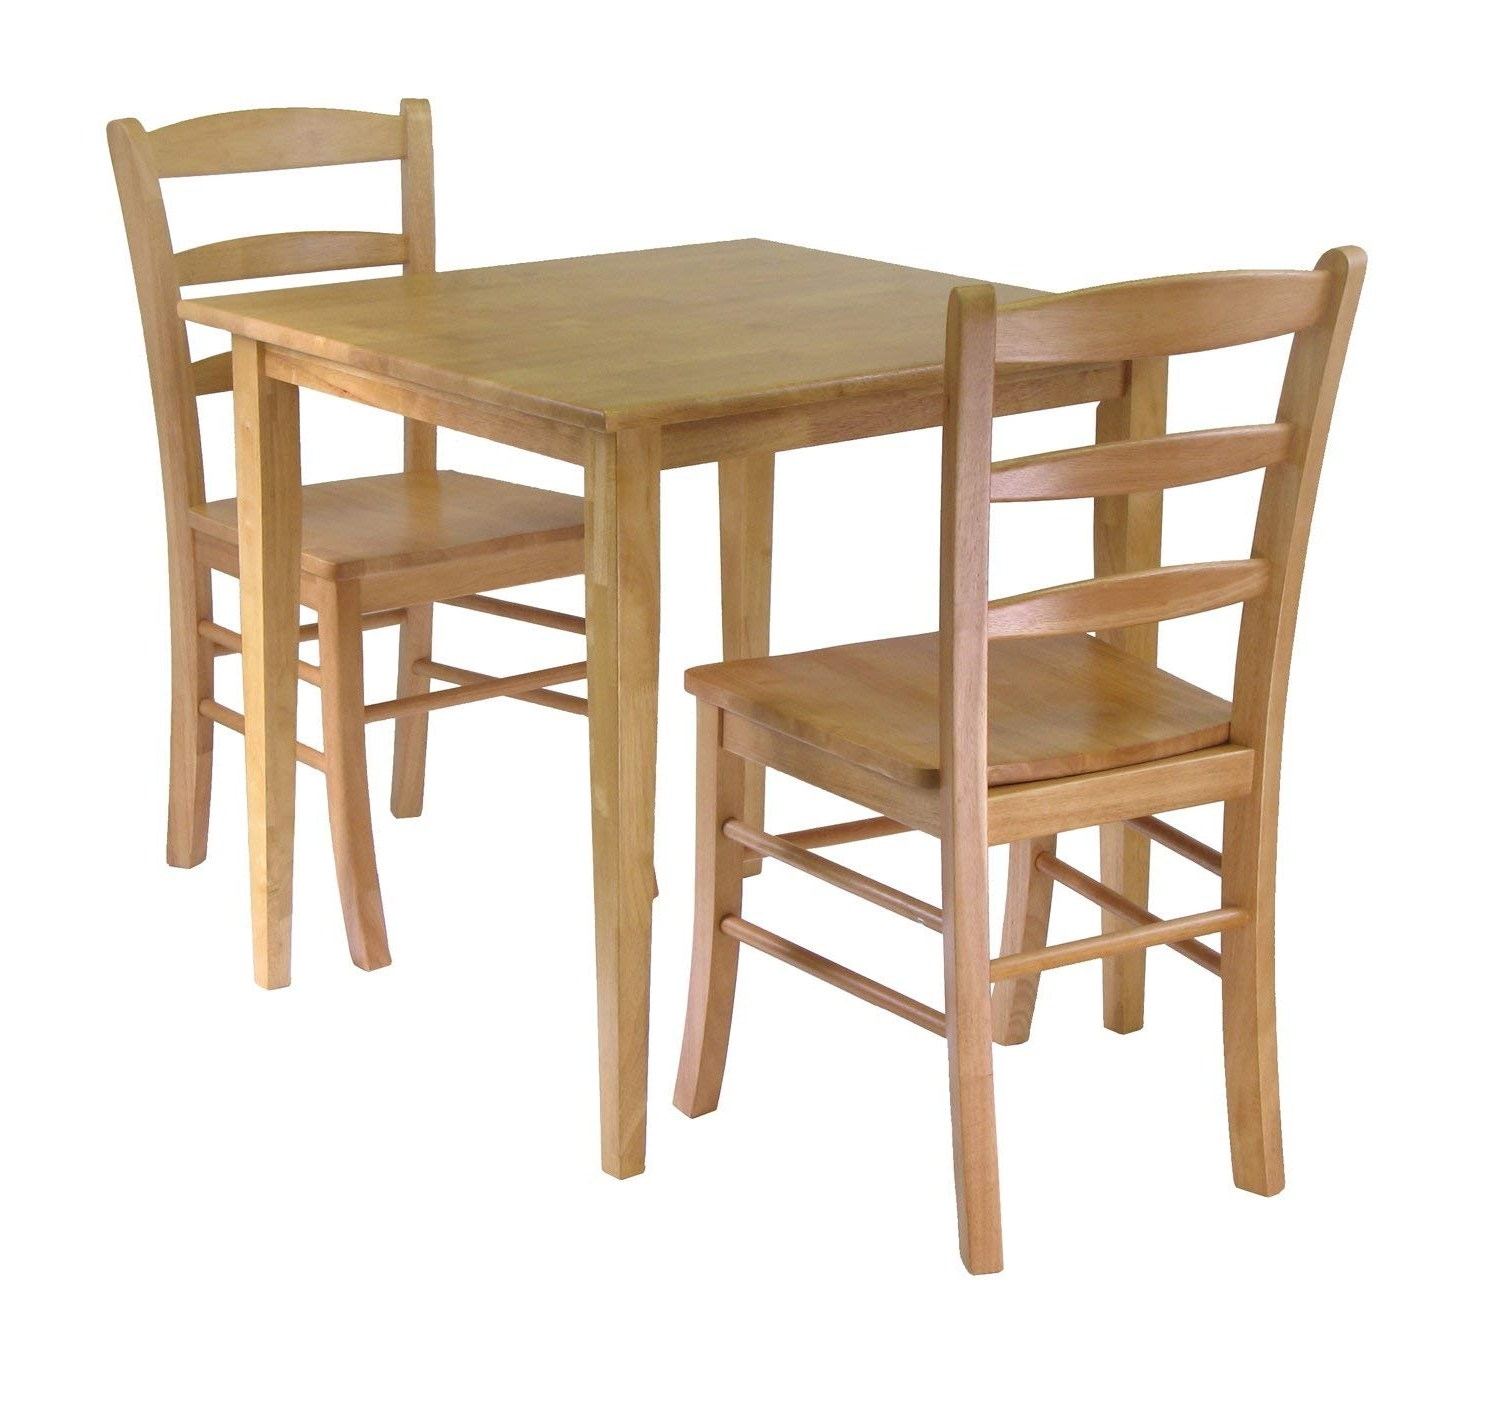 Amazon – Winsome Groveland 3 Piece Wood Dining Set, Light Oak Regarding Most Up To Date Cheap Dining Tables Sets (Gallery 20 of 25)